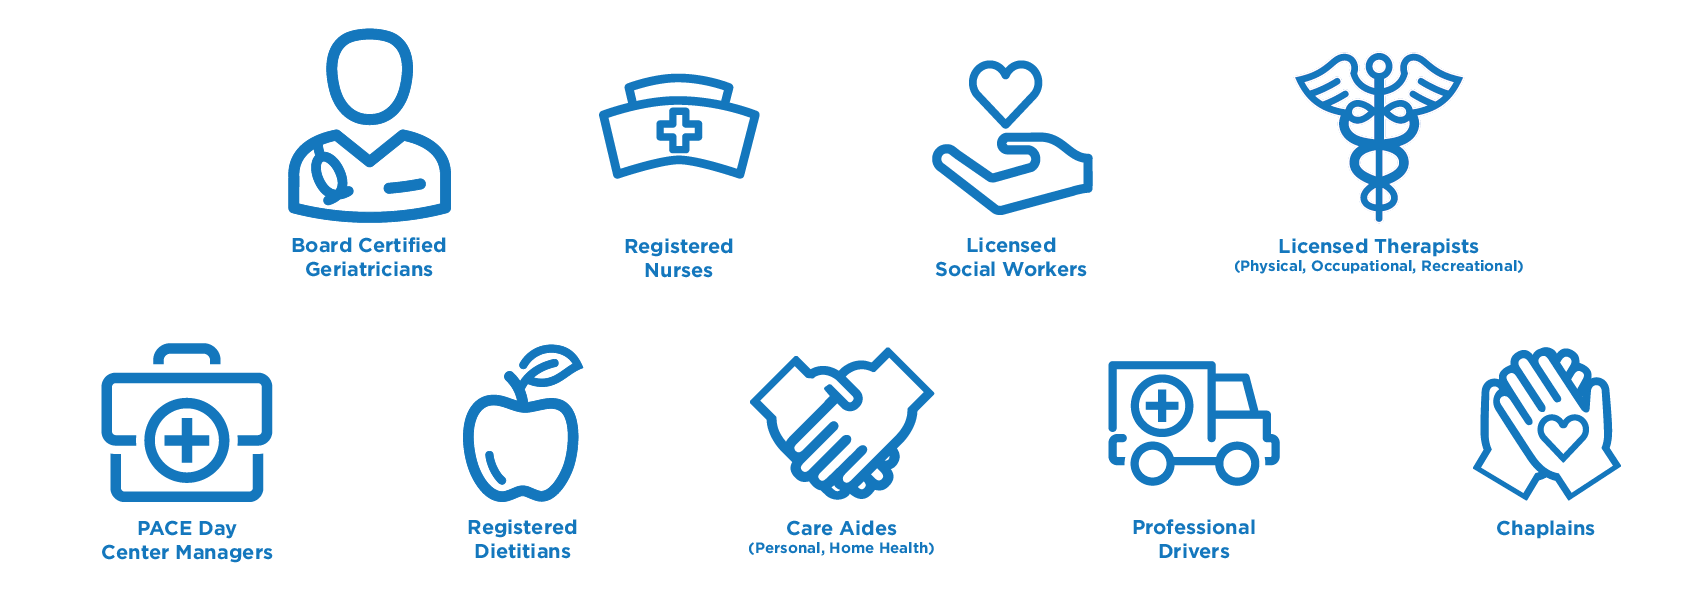 ElderONE care team icons